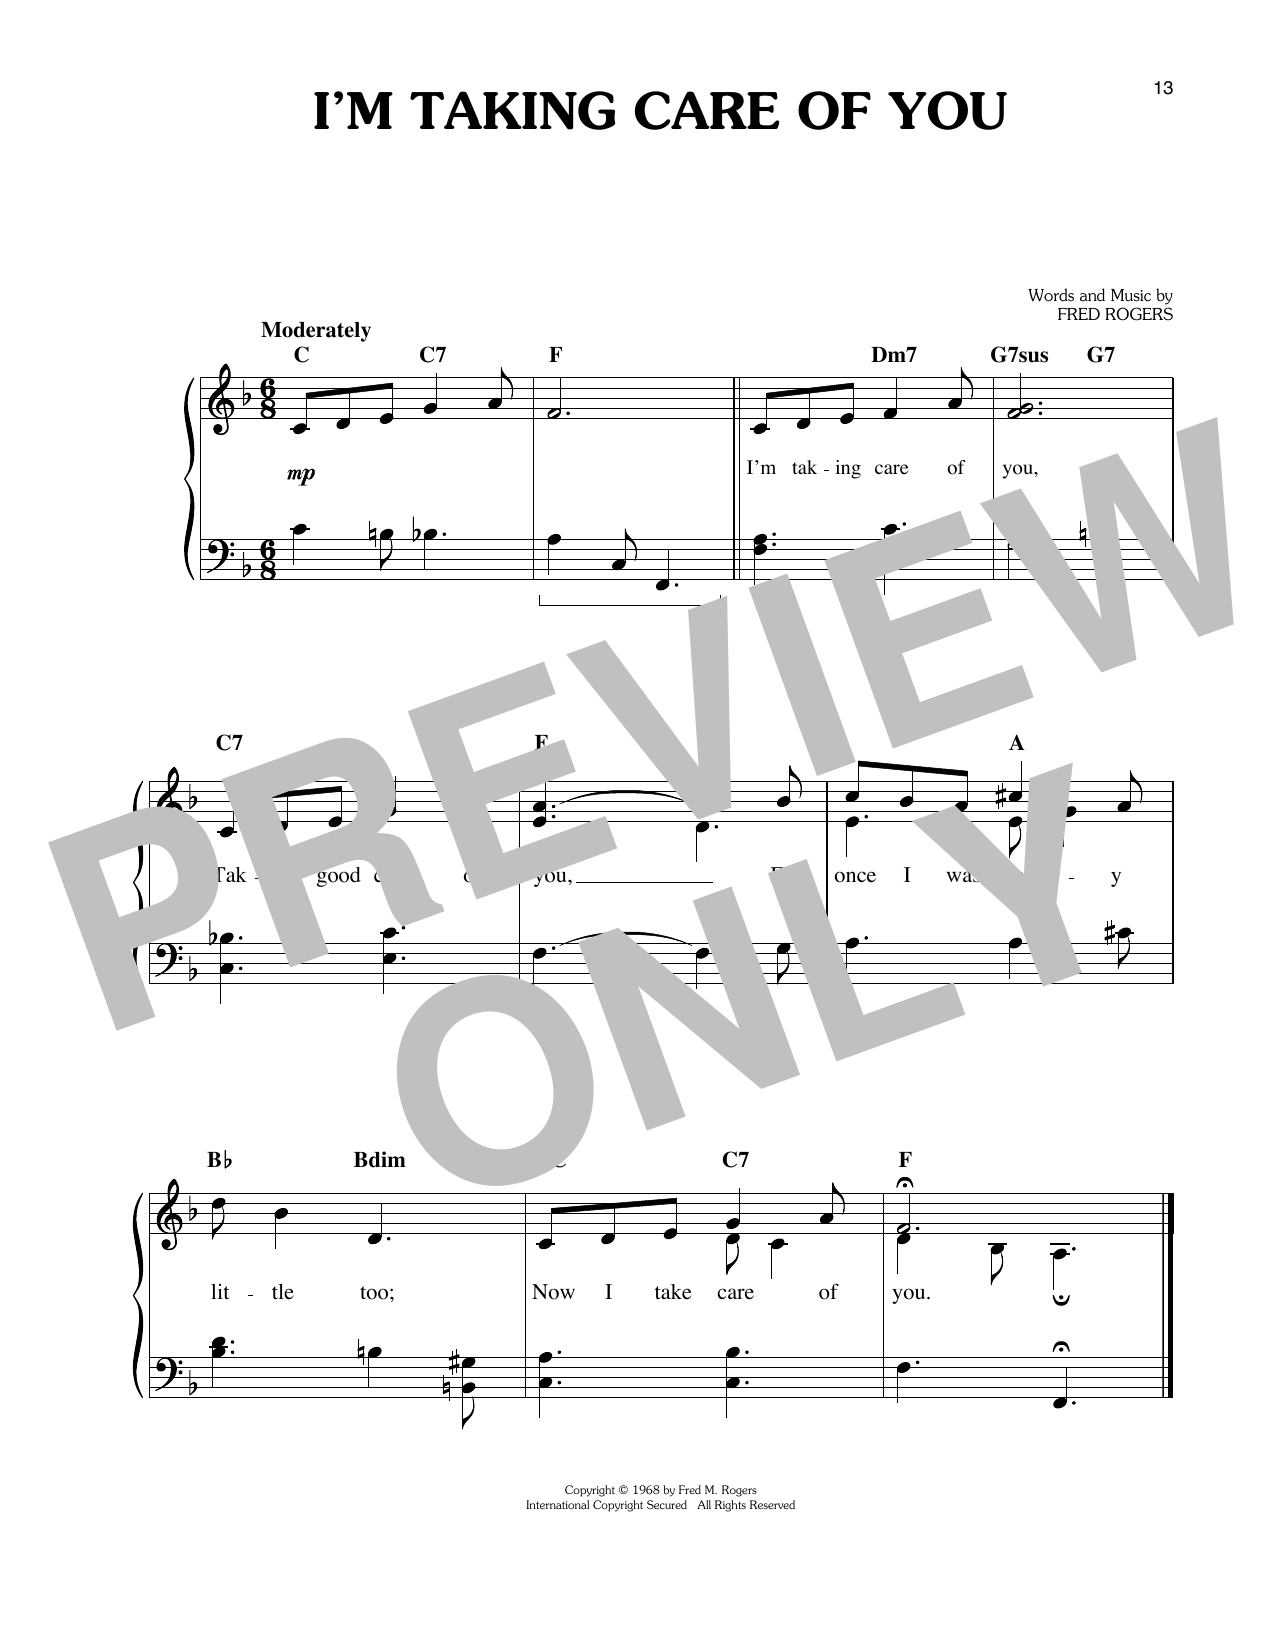 Fred Rogers I'm Taking Care Of You sheet music notes and chords